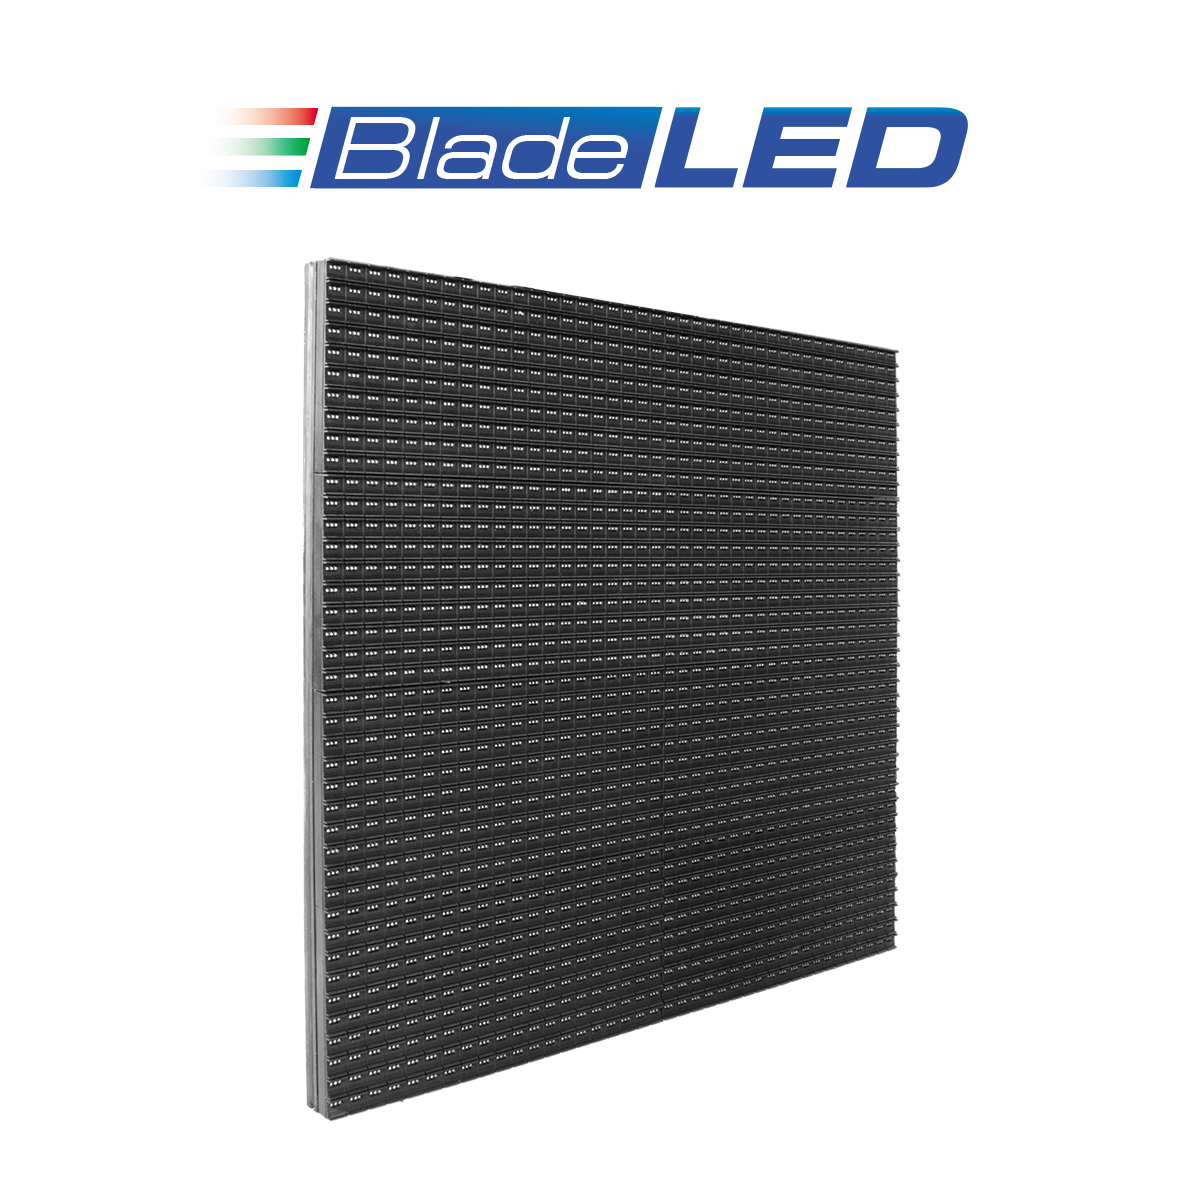 BLADE LED Für Festinstallationen